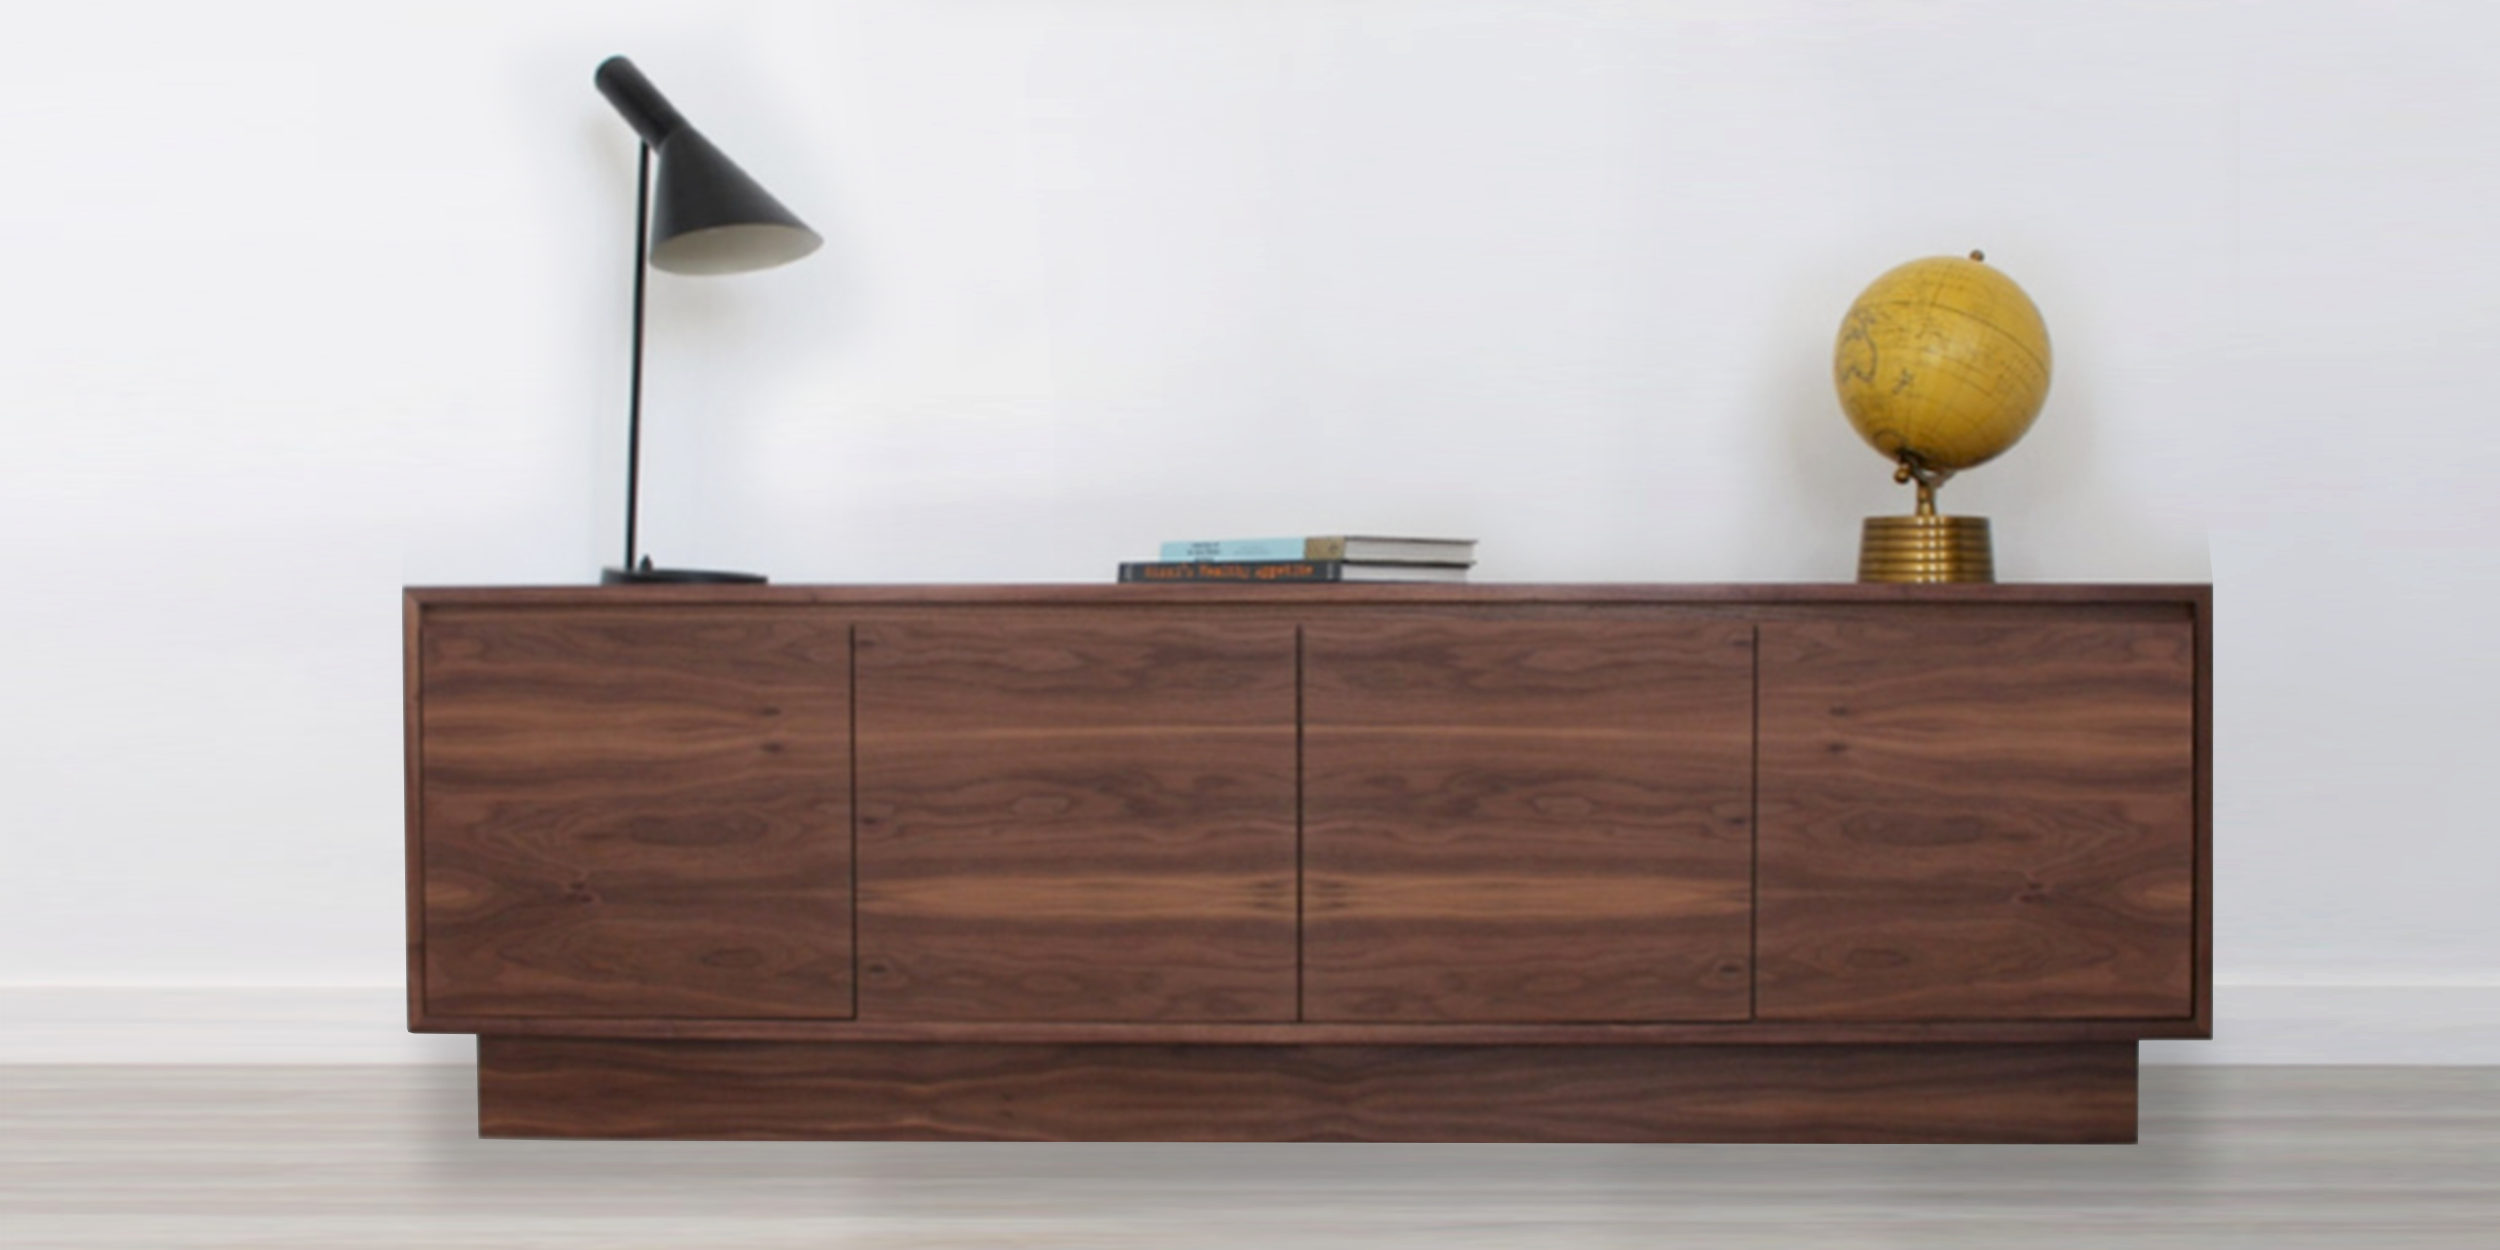 Handmade Sideboards from Pash Classics